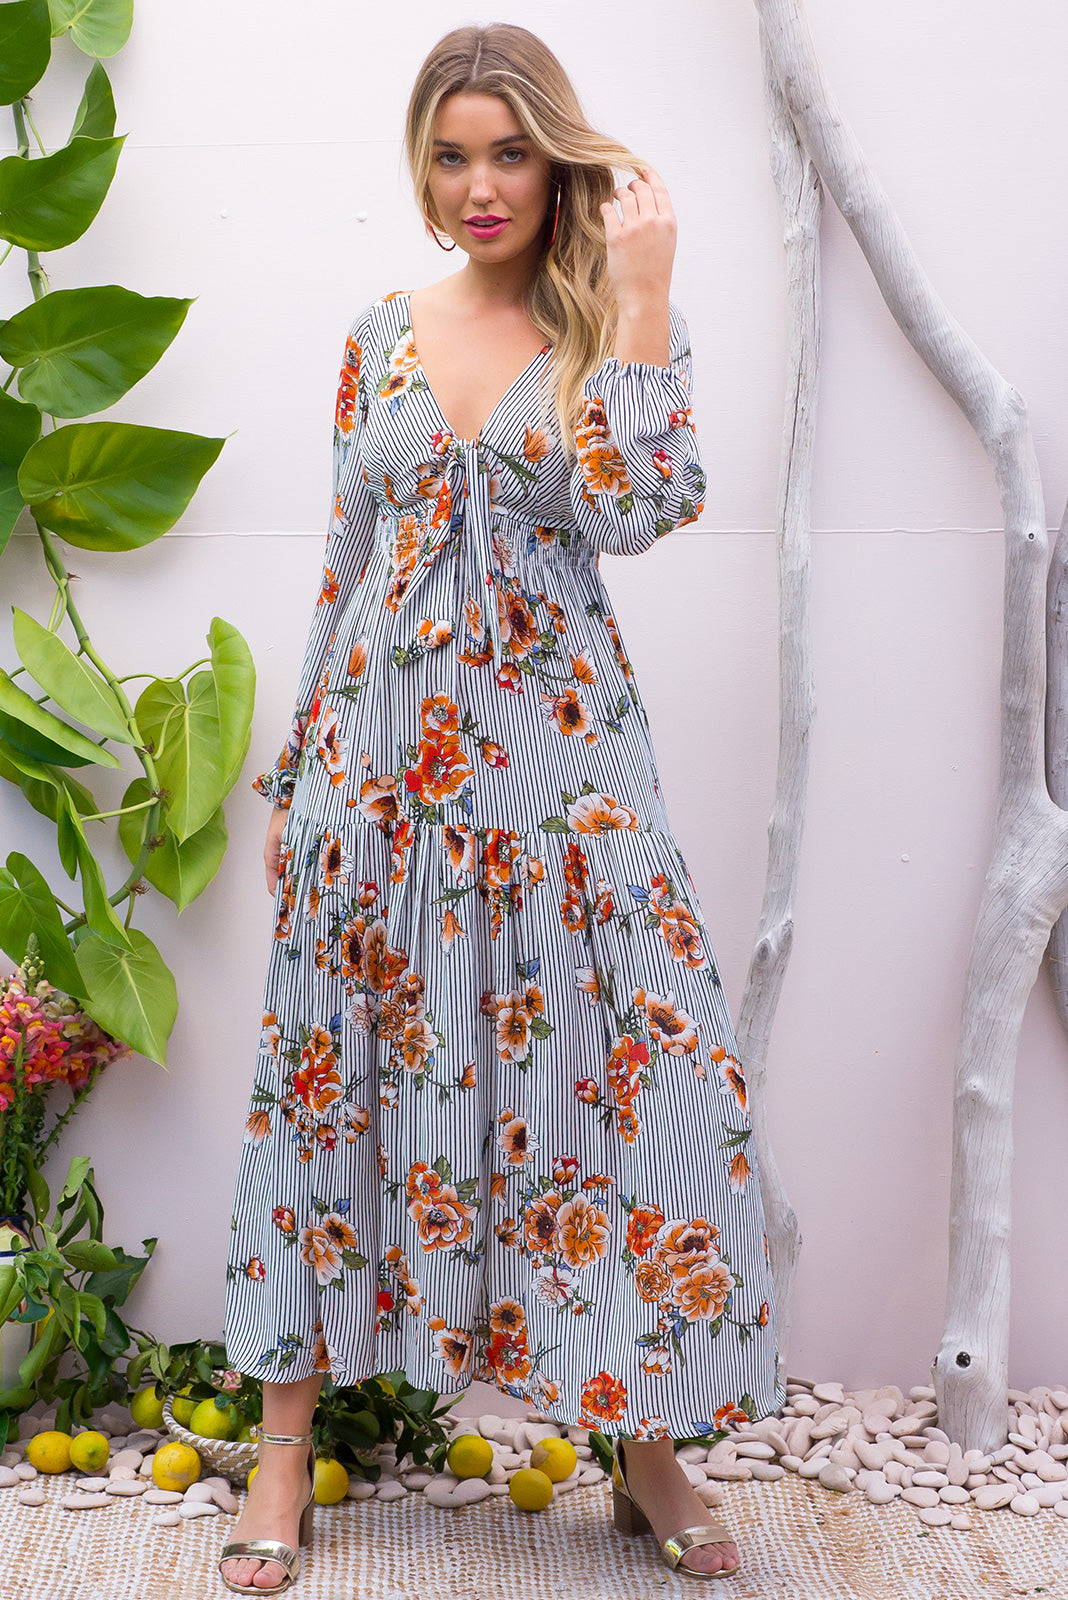 Ruby Stripes and floral Maxi Dress with an empire line elasticated waist dress with a adjustable tie front and tiered skirt in a soft crinkle textured pin stripe and floral print